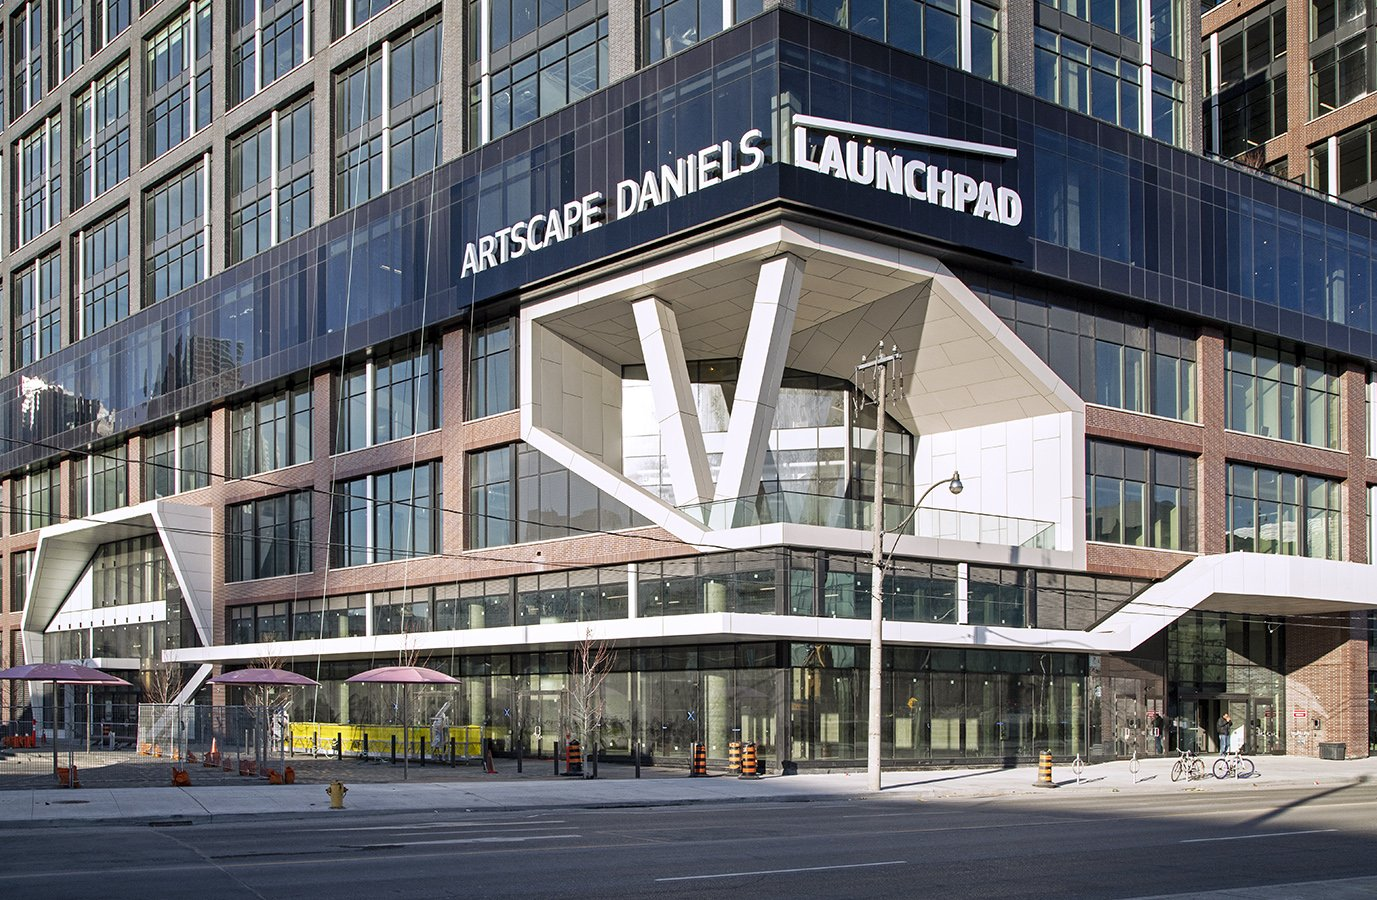 20190103. Artscape Daniels Launchpad Is Now Open At Jarvis And Q